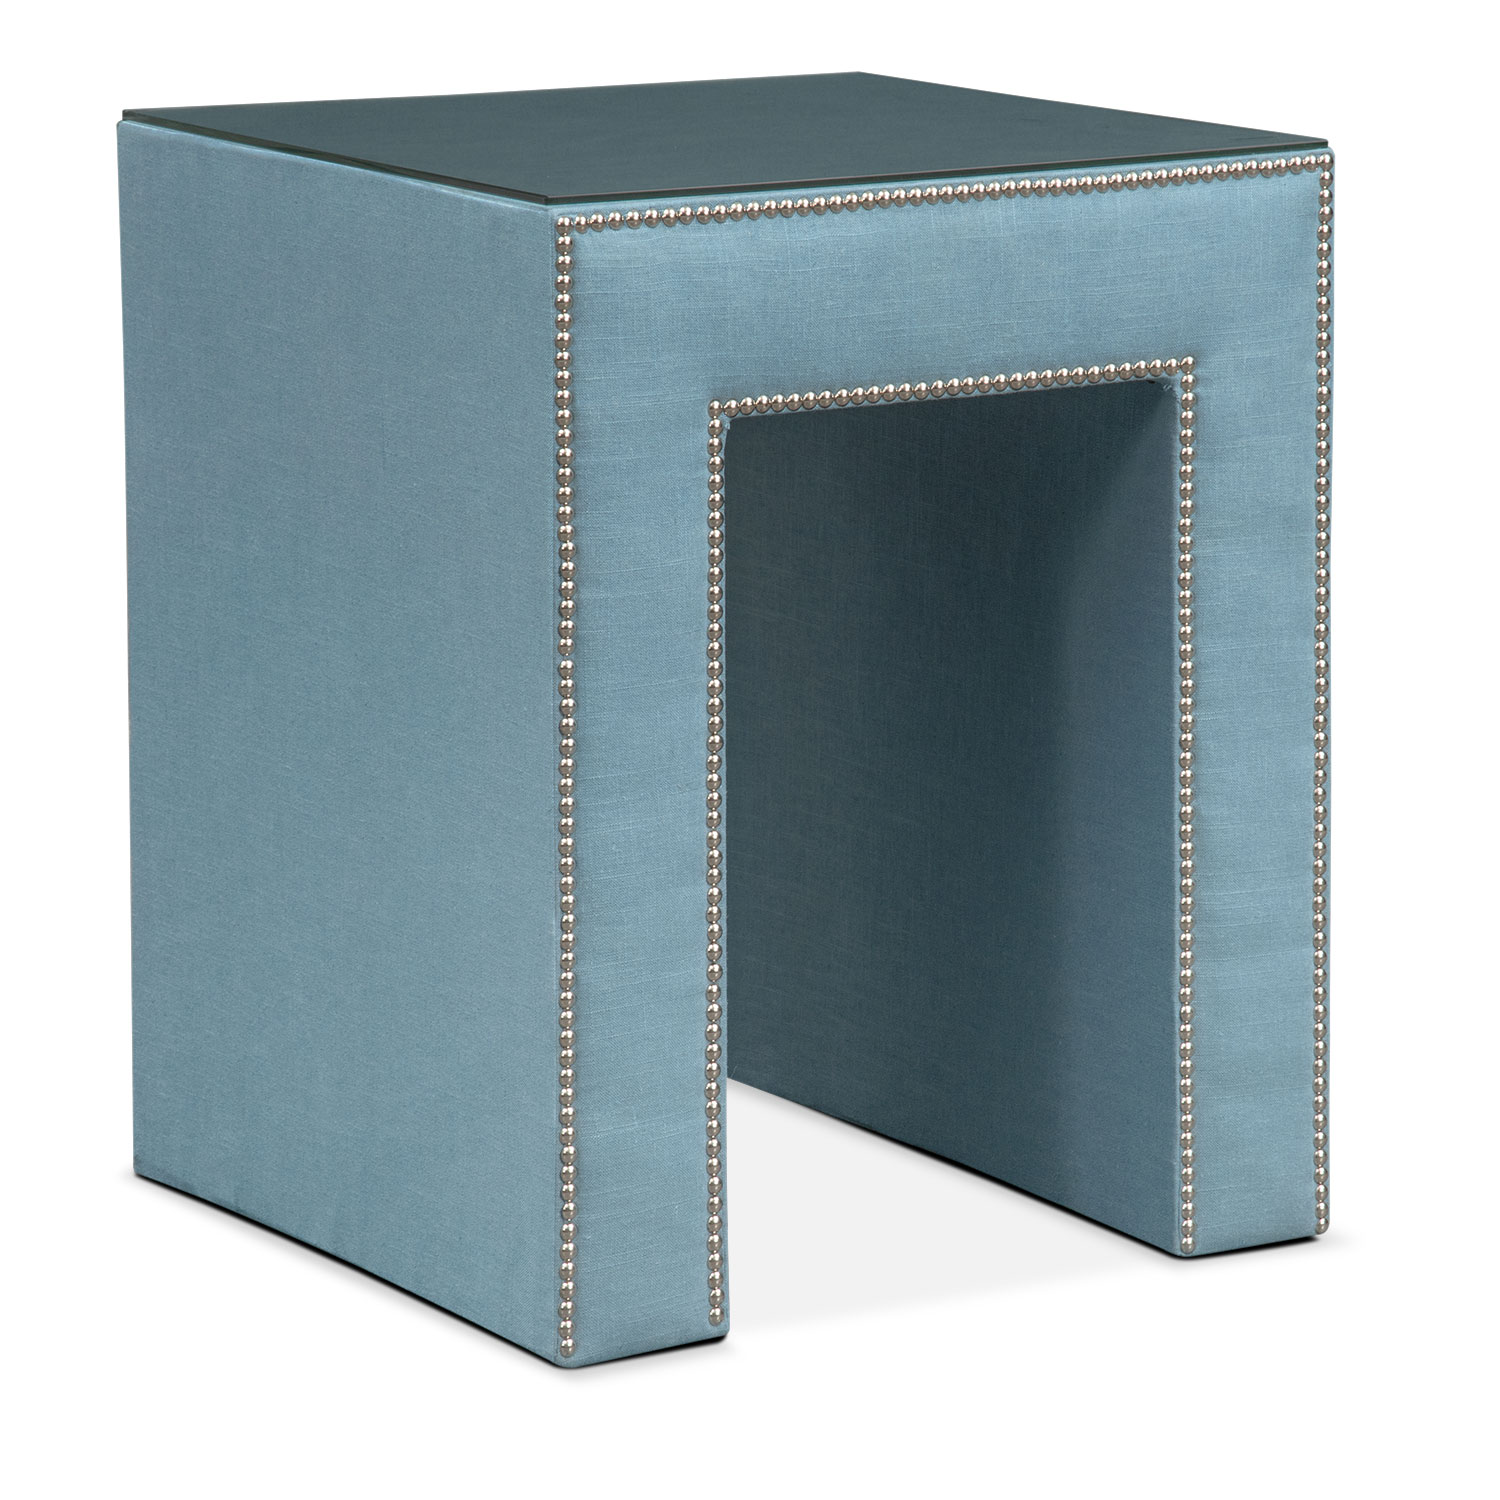 Bedroom Furniture - Nyla Nightstand - Teal